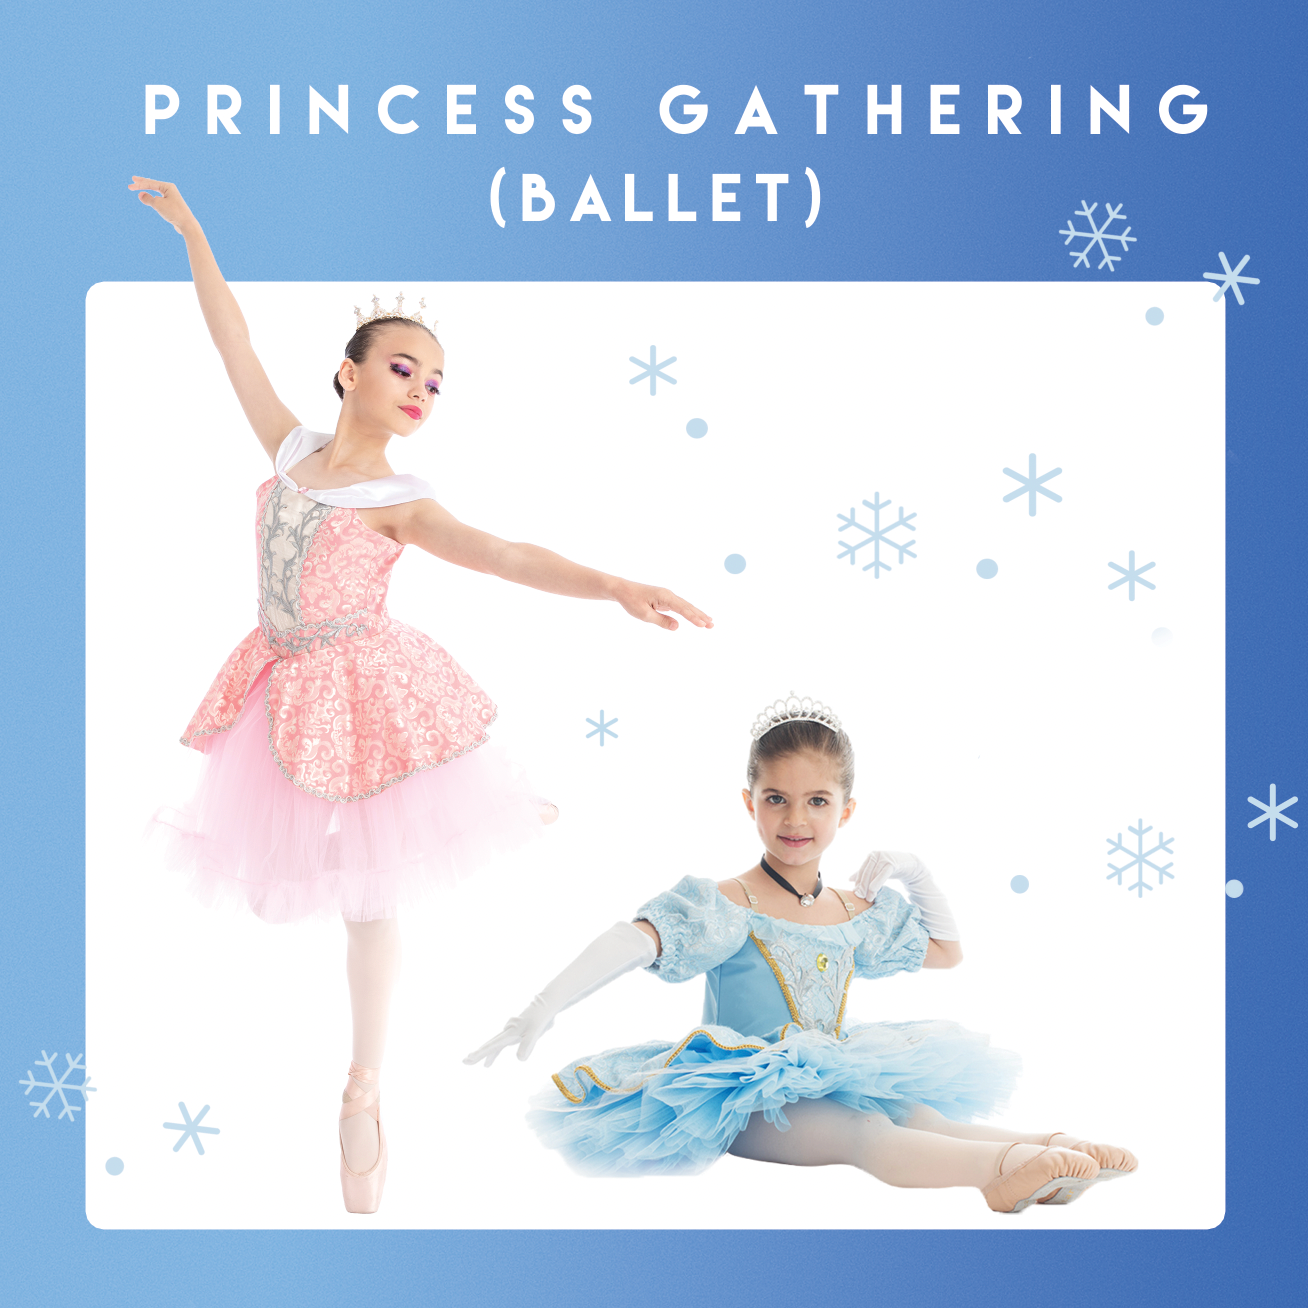 PRINCESS GATHERING (Ballet for Age 18 months +)